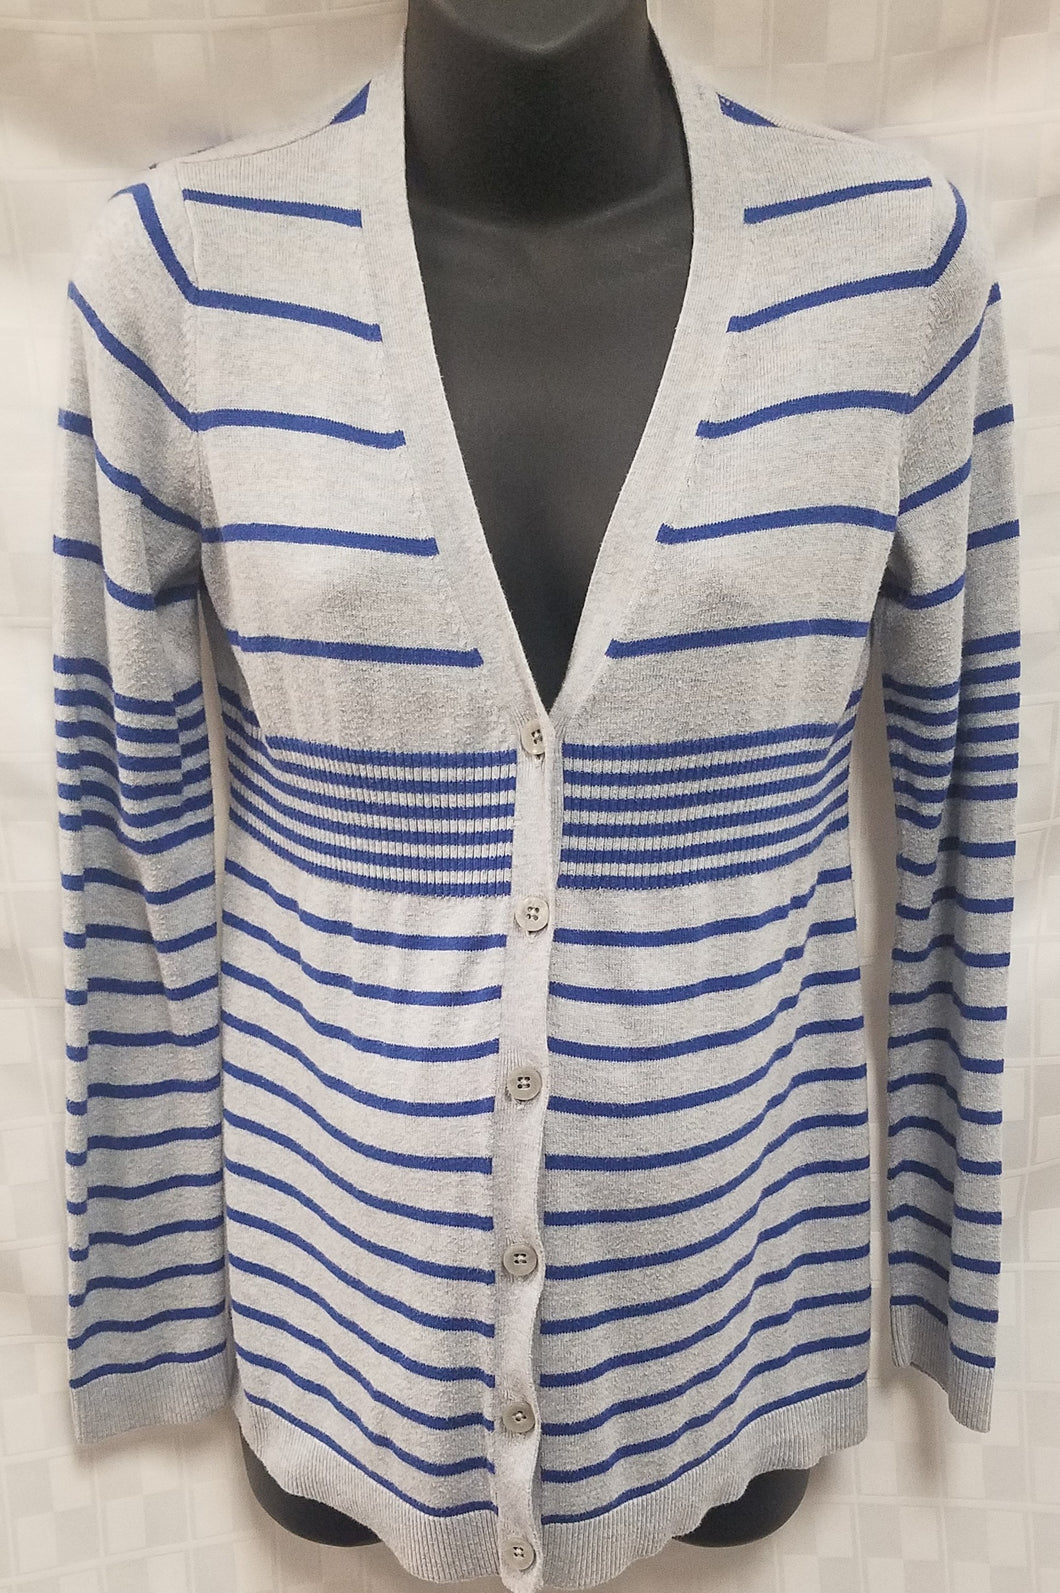 Small Blue & Grey Striped Button Up Maternity Cardigan Sweater